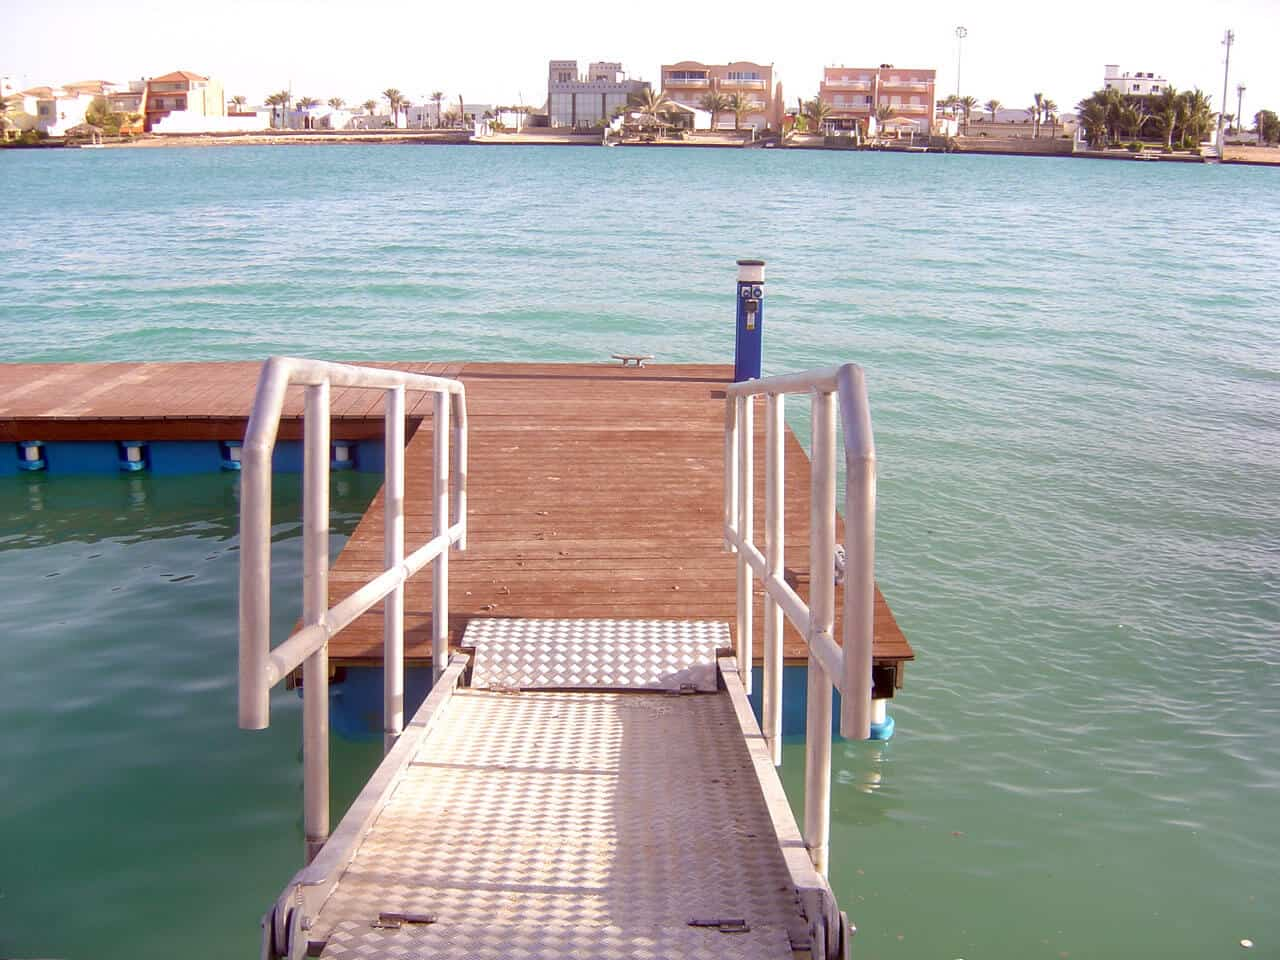 Airfloat Modular Pontoon System in use - Saudi Arabia - 3